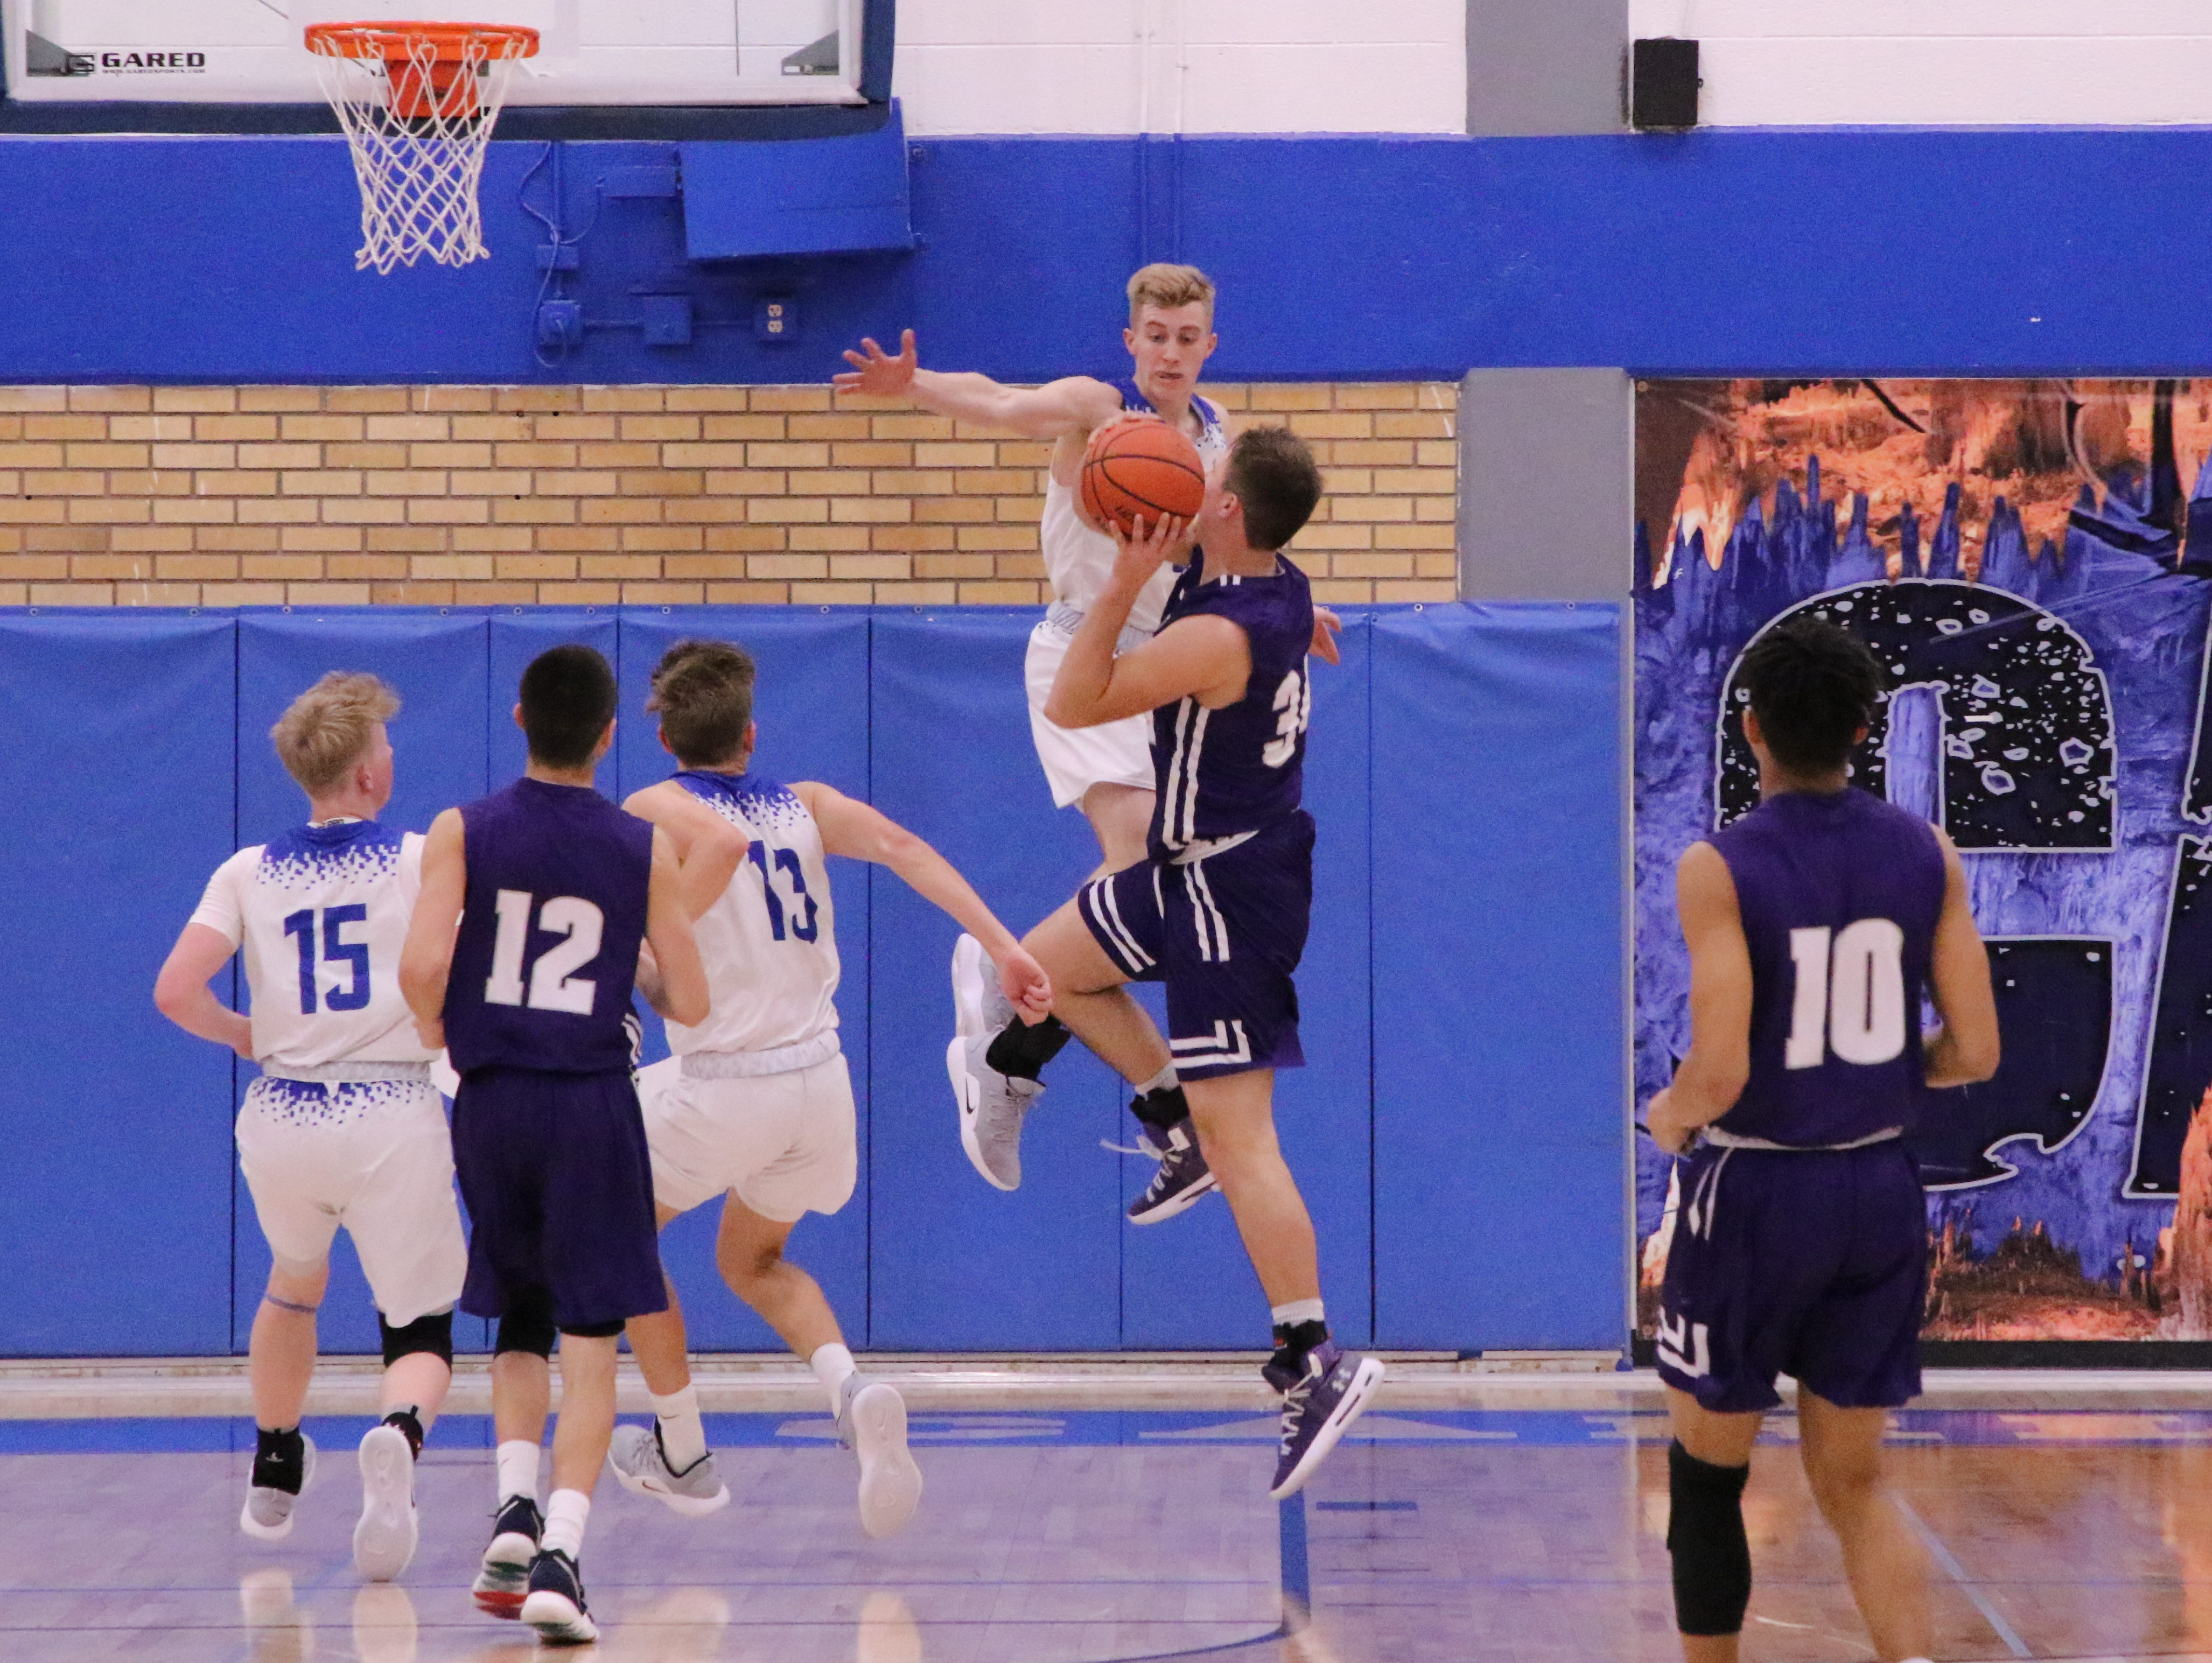 Carlbad's Evan Sullivan goes for a block against Clovis' Bryce Cabeldue during the second half of Tuesday's game.